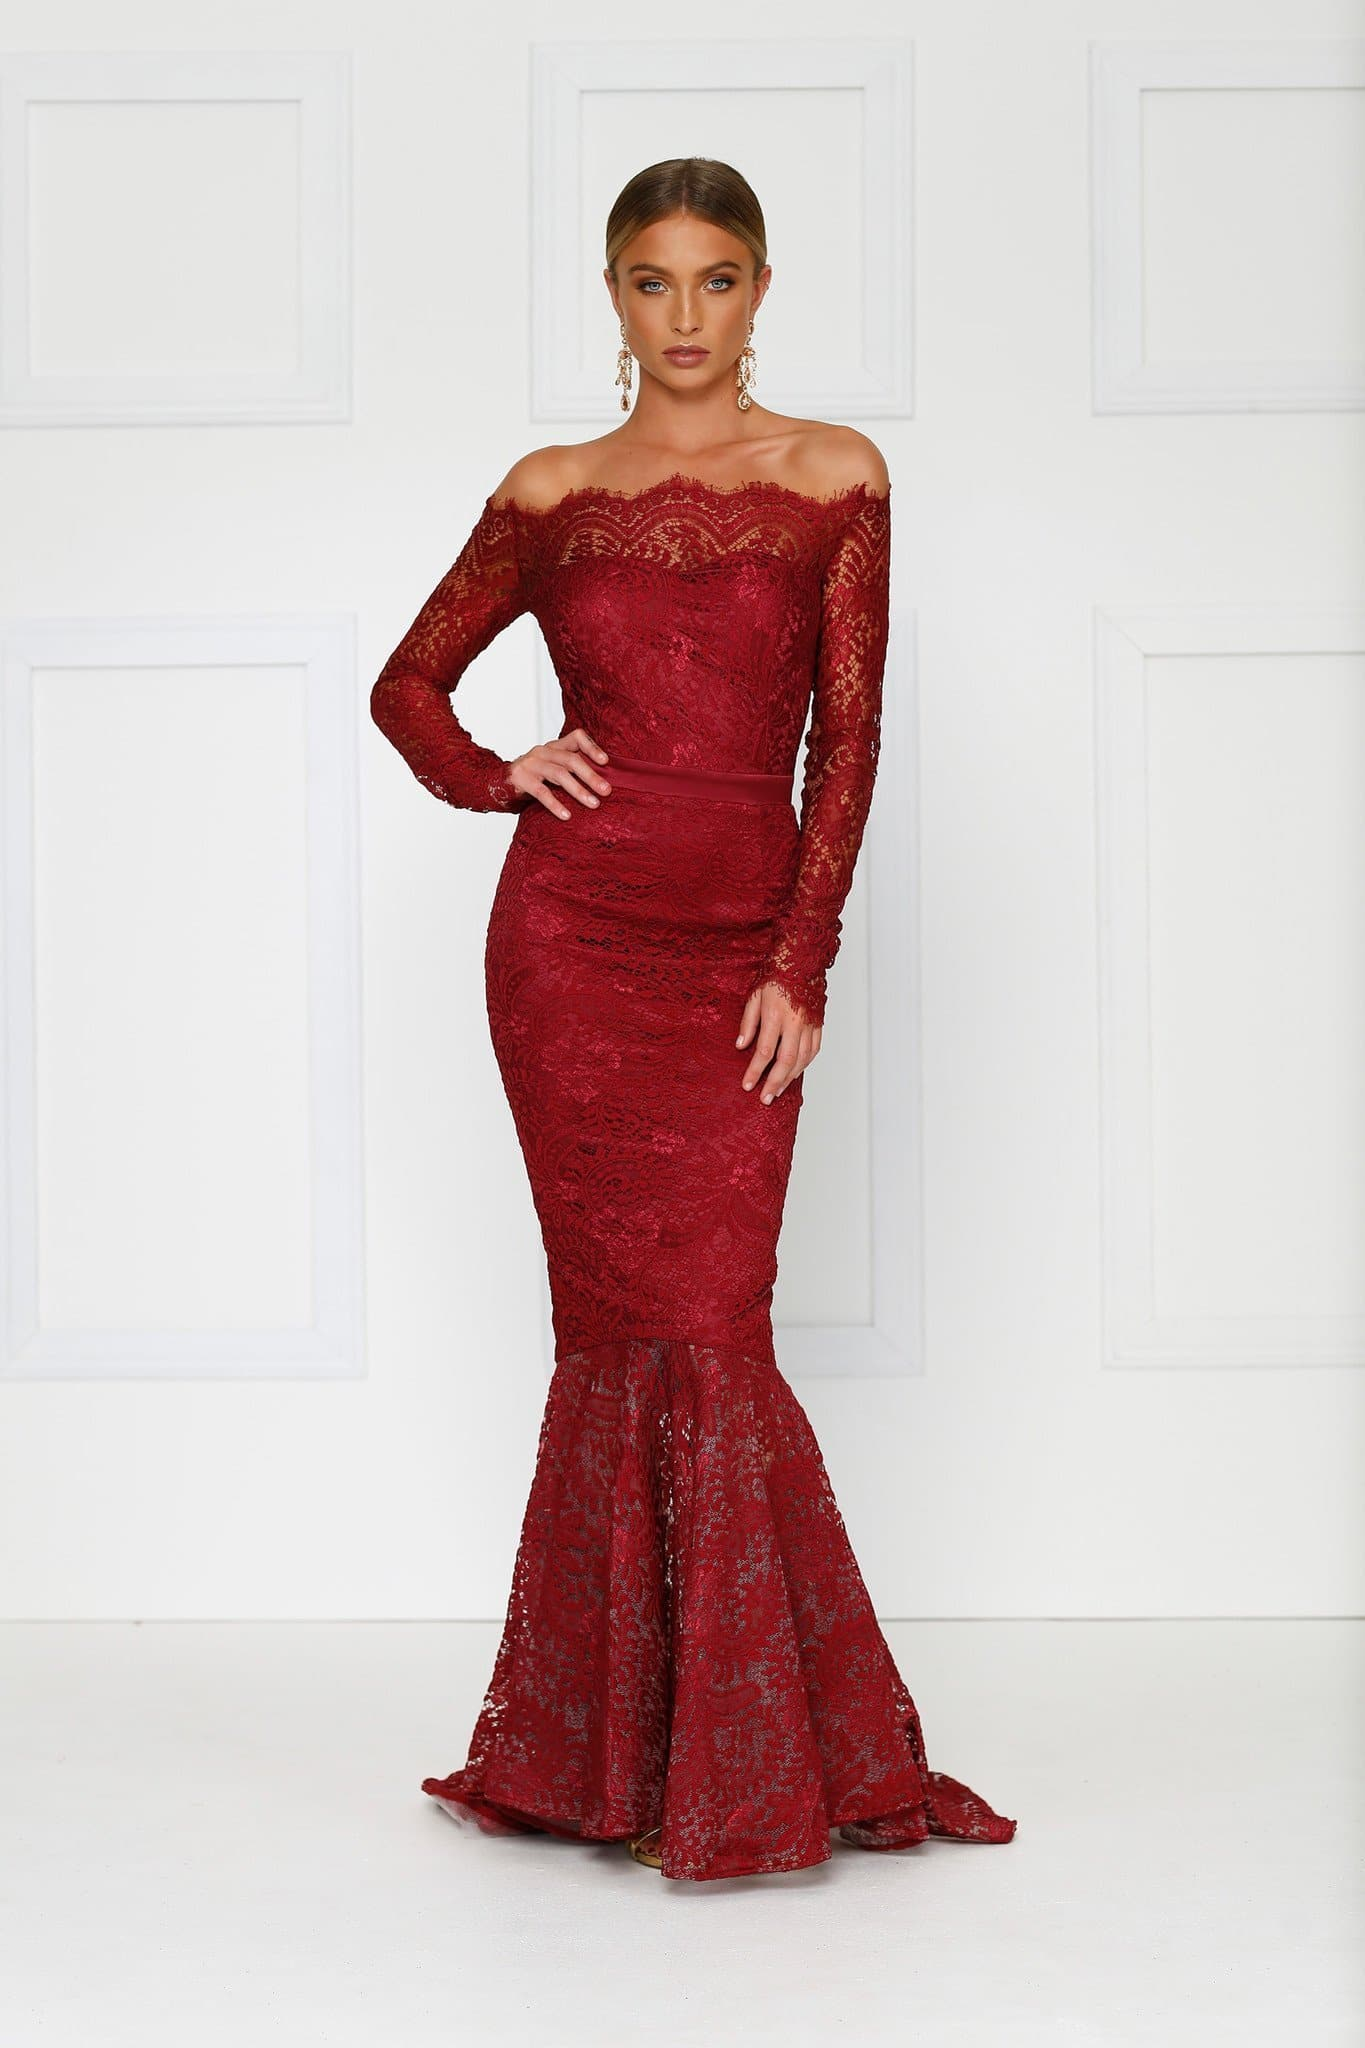 7f6d91d9b6843 Kamali - Burgundy Lace Gown with Off-Shoulder Long Sleeves